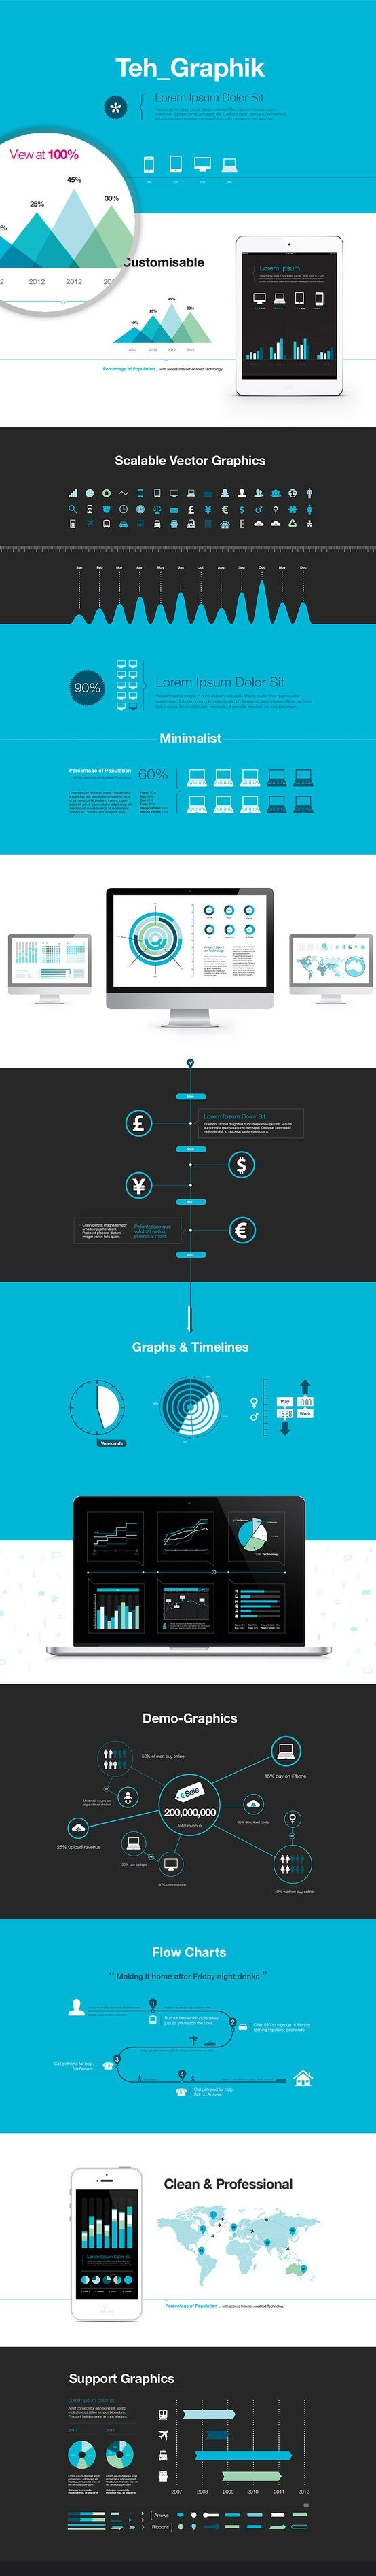 32 best Infographic New images on Pinterest | Infographic ...